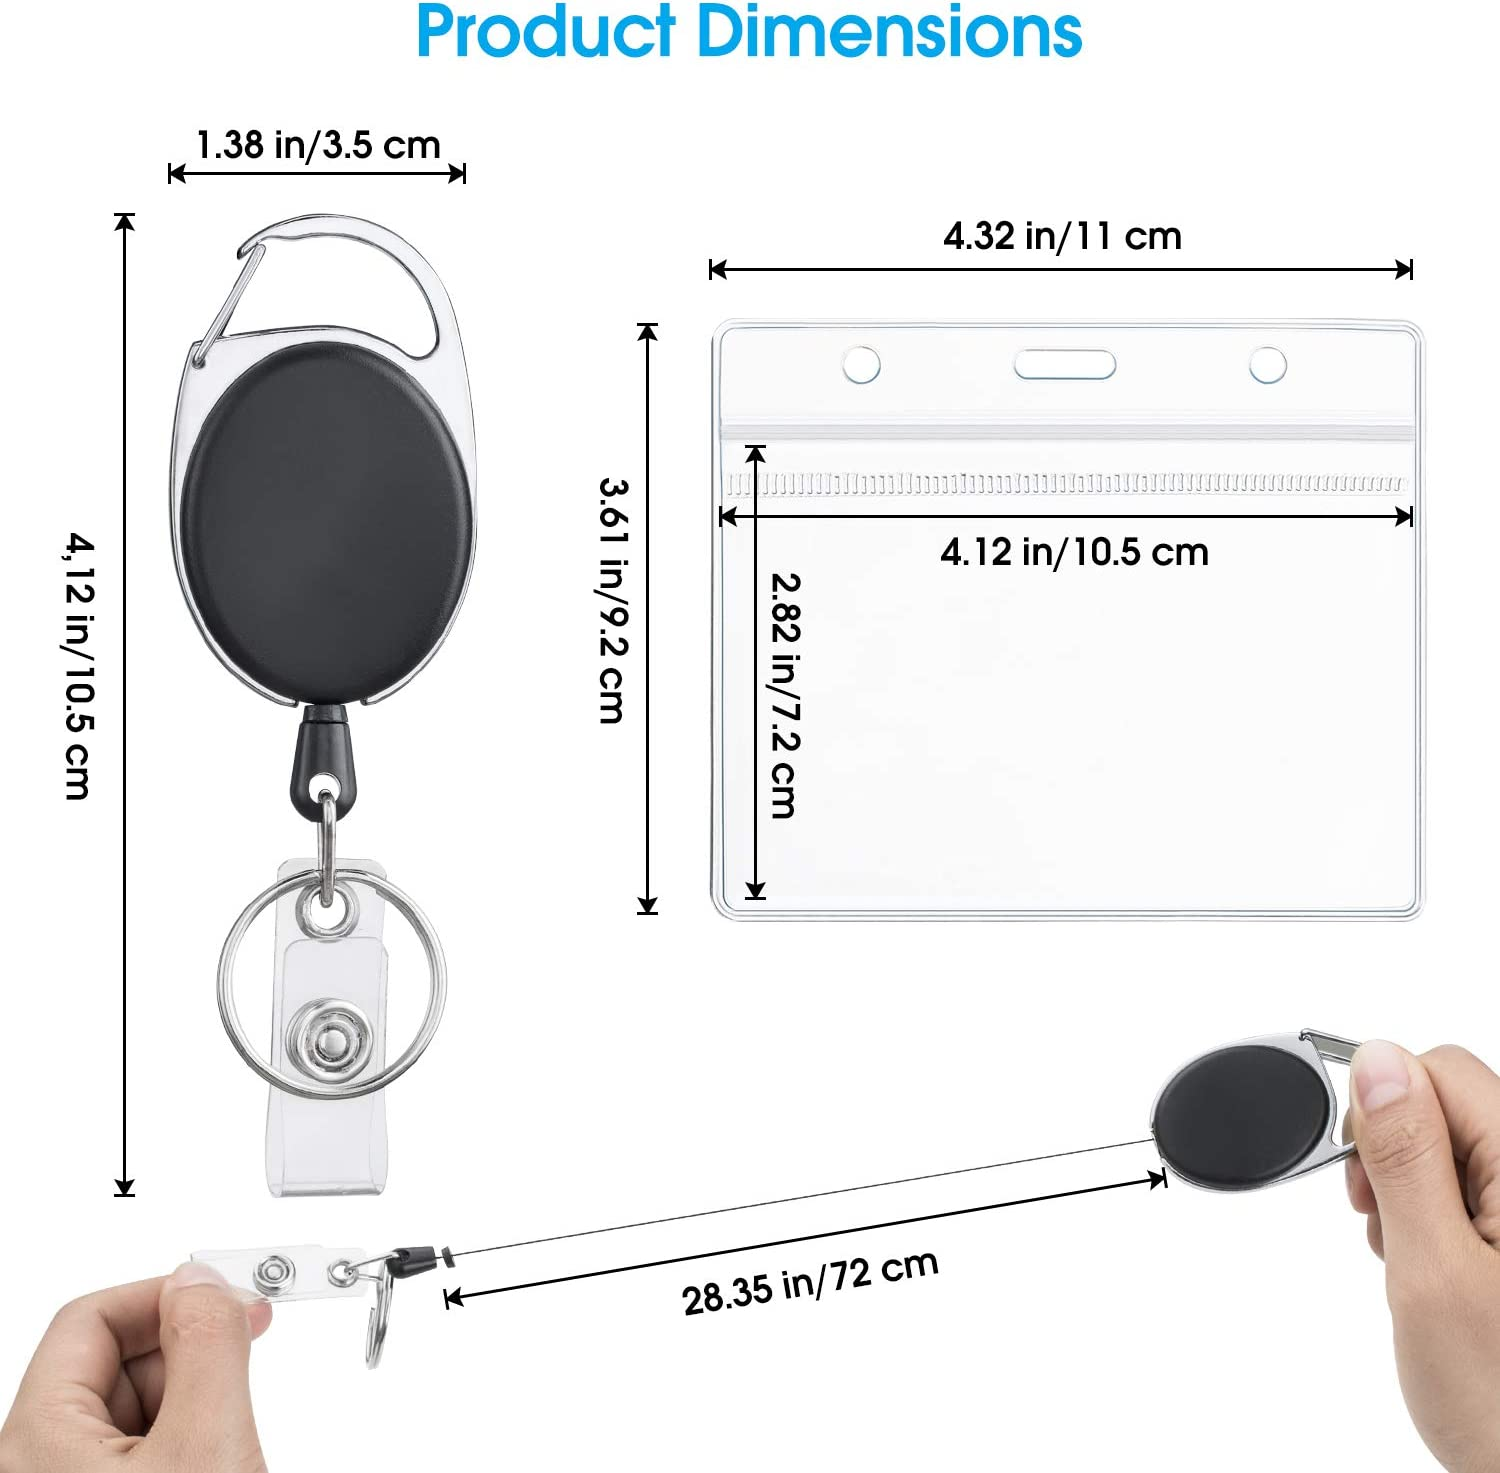 Student Cards InnoGear Badge Holders and Badge Reels 10 Pieces of Card Holders and Retractable Badge Reels for ID Cards Passes